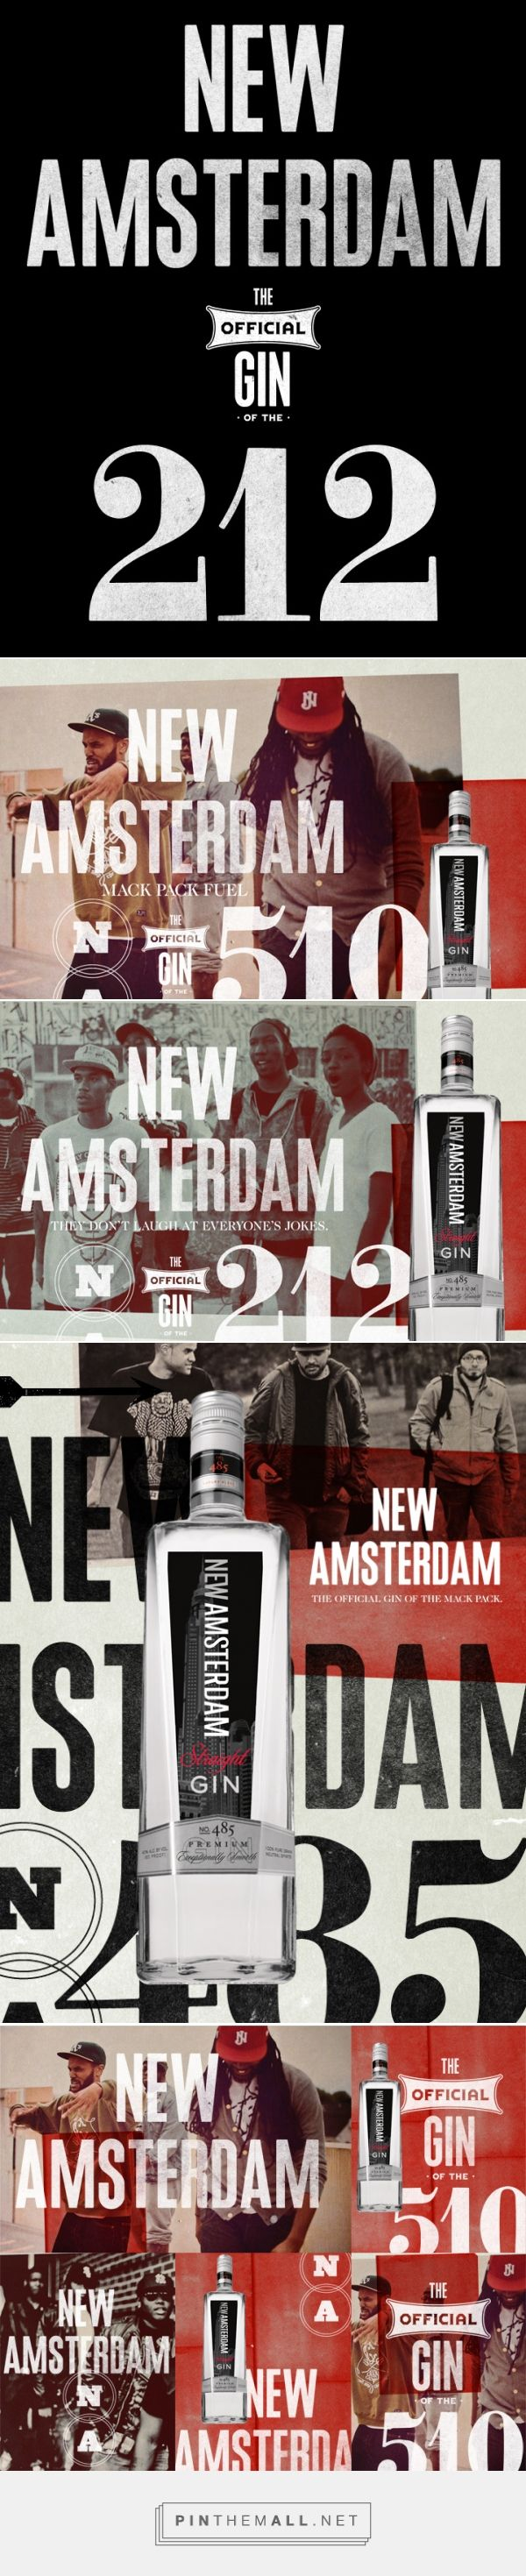 New Amsterdam Gin - Stopbreathing... - a grouped images picture - Pin Them All